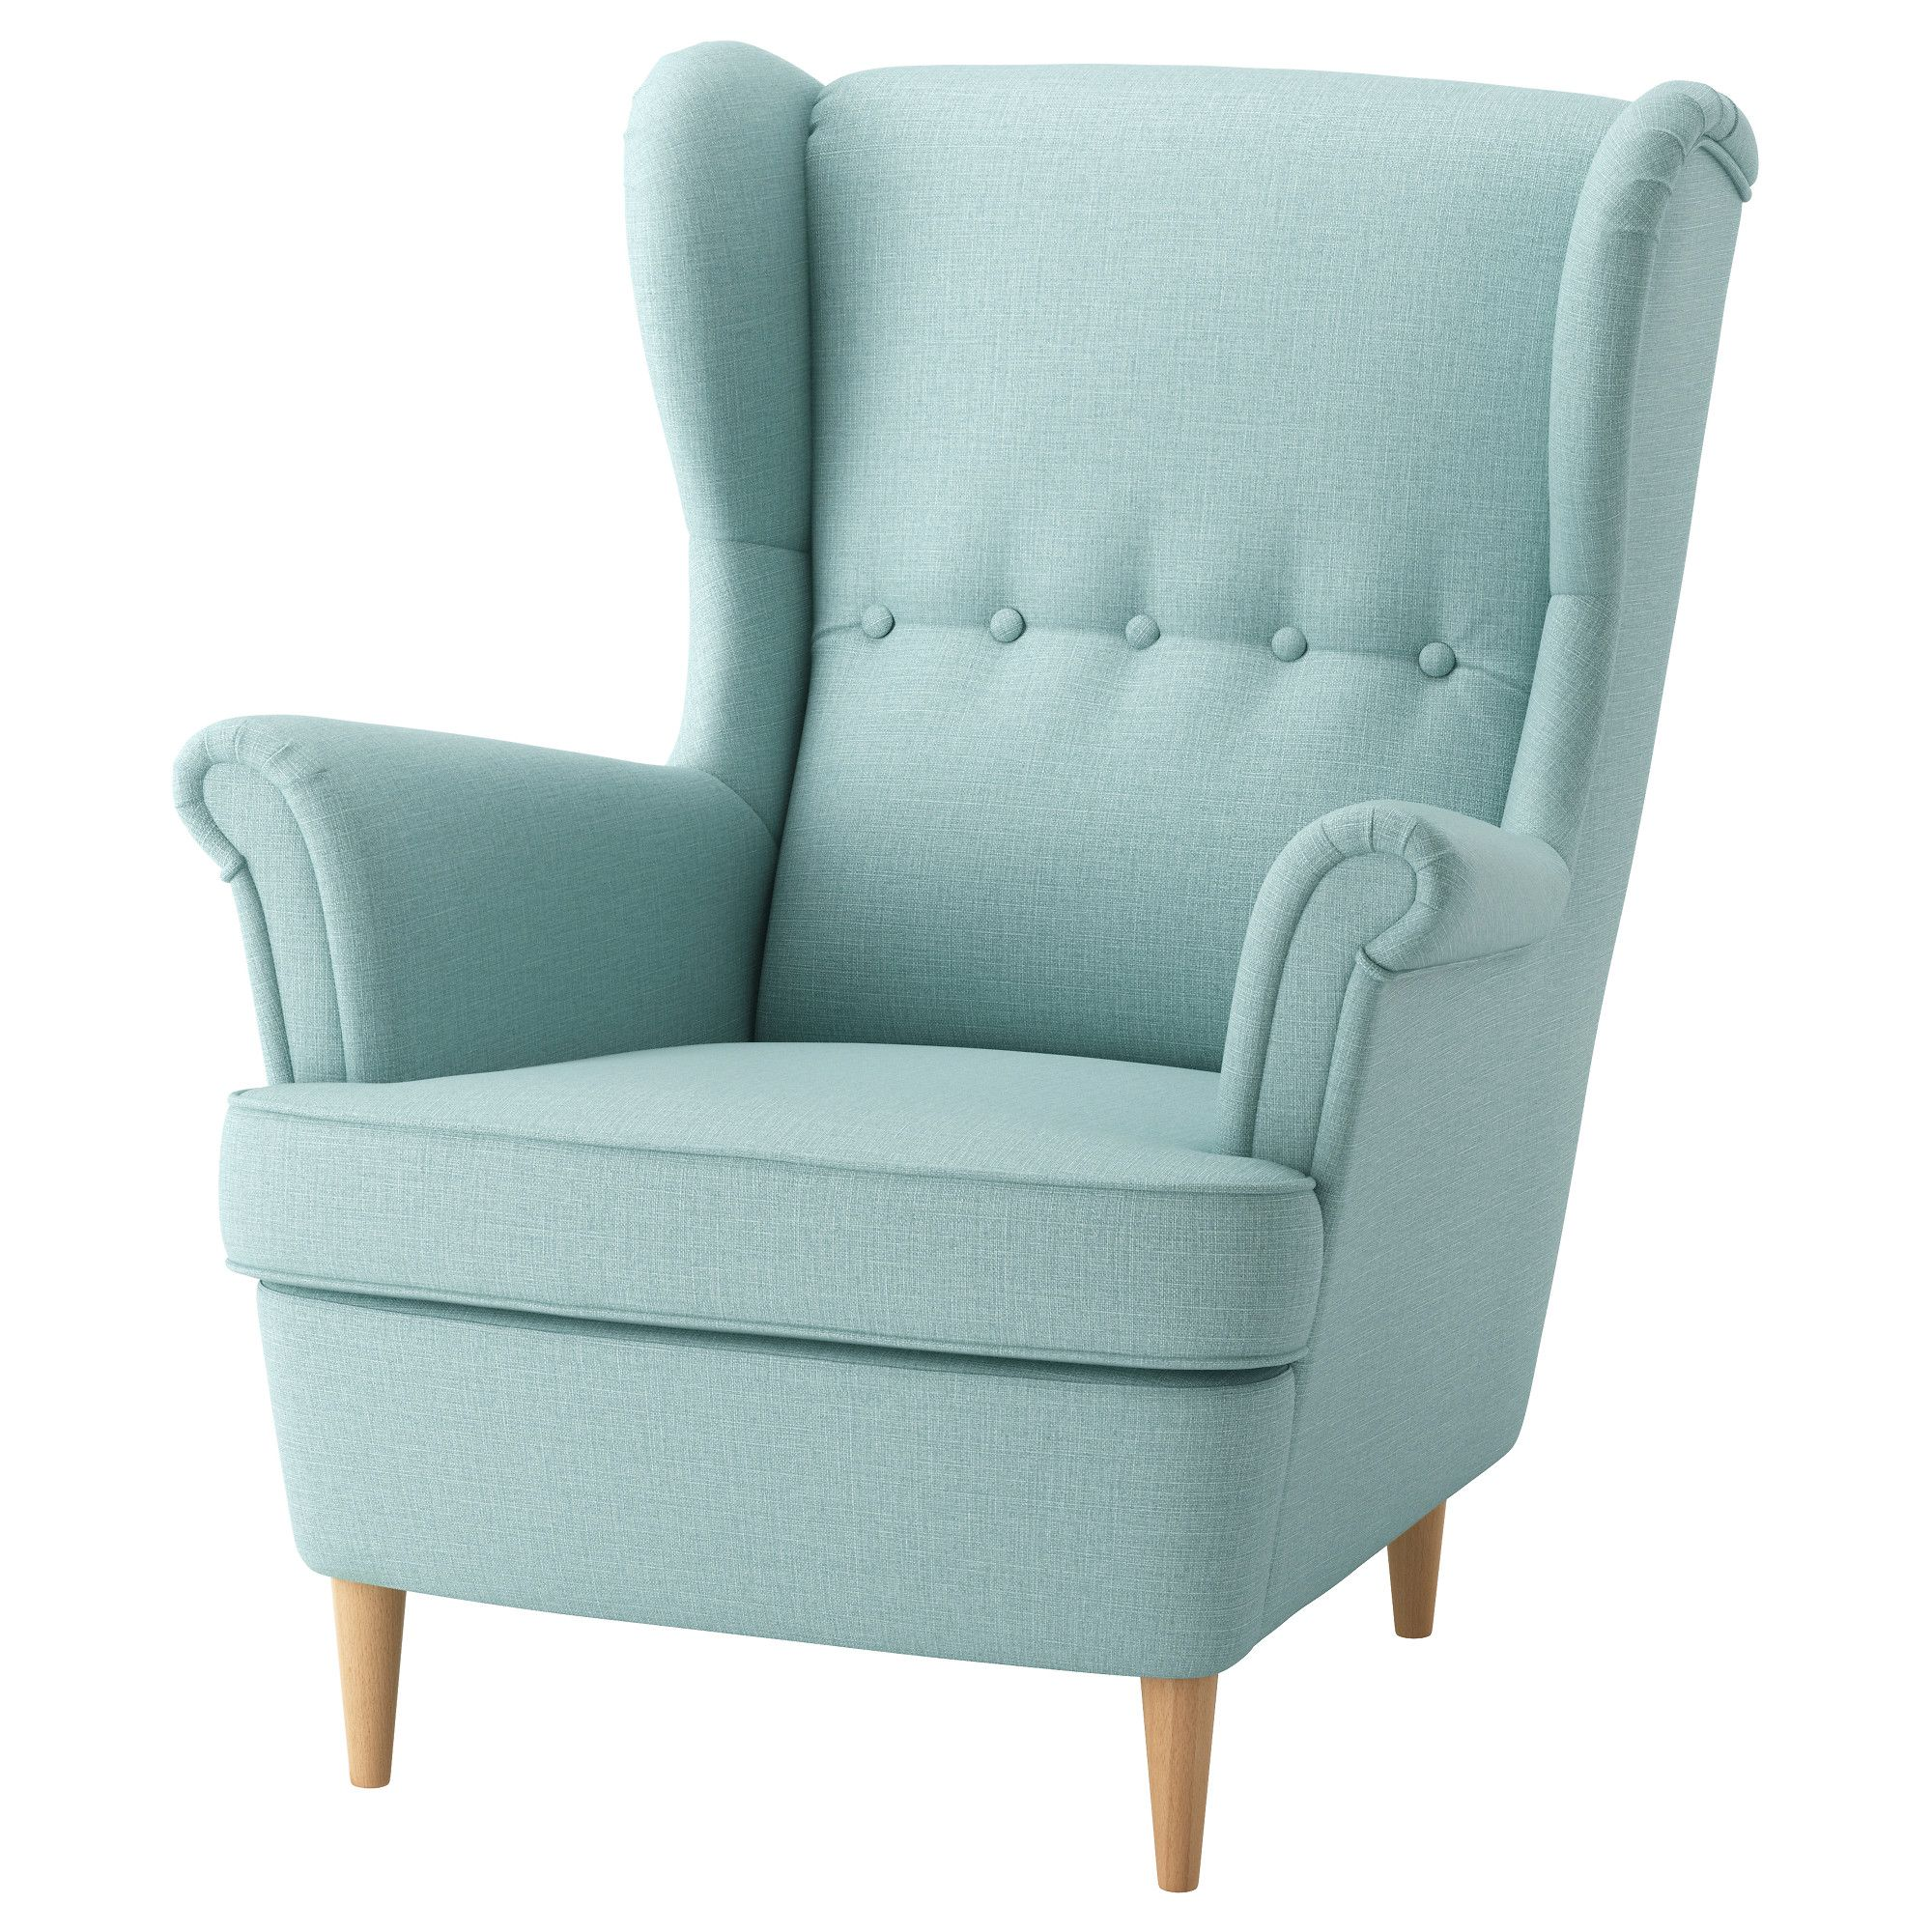 Pin By Blankabloch On Fotel In 2020 Ikea Armchair Wing Chair Ikea Strandmon